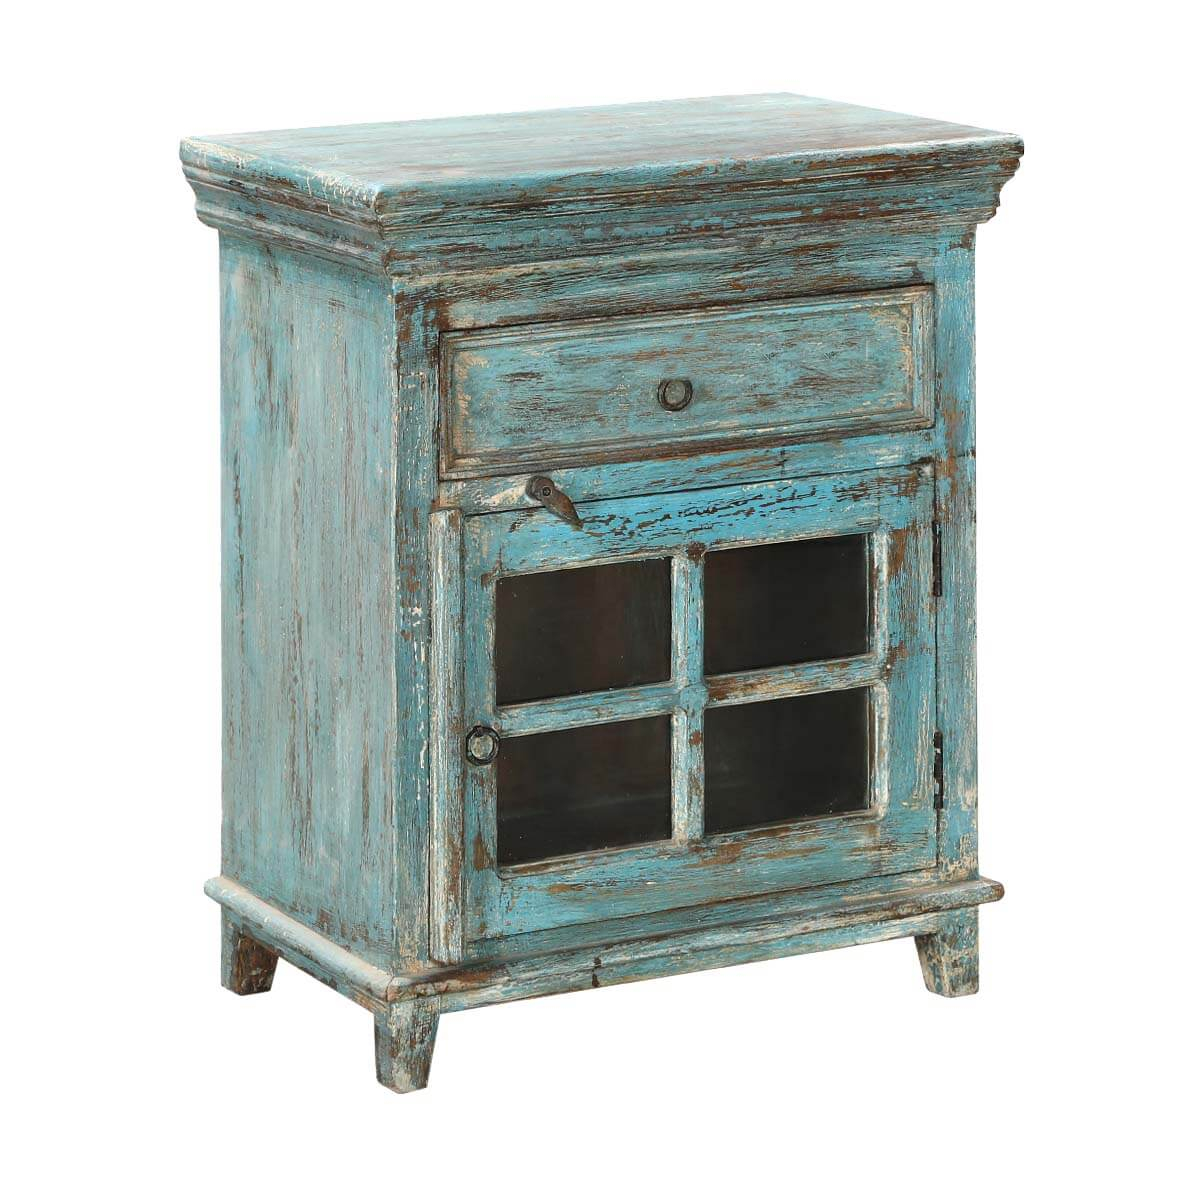 Turquoise trail 24 window pane door rustic 1 drawer for A p furniture trail